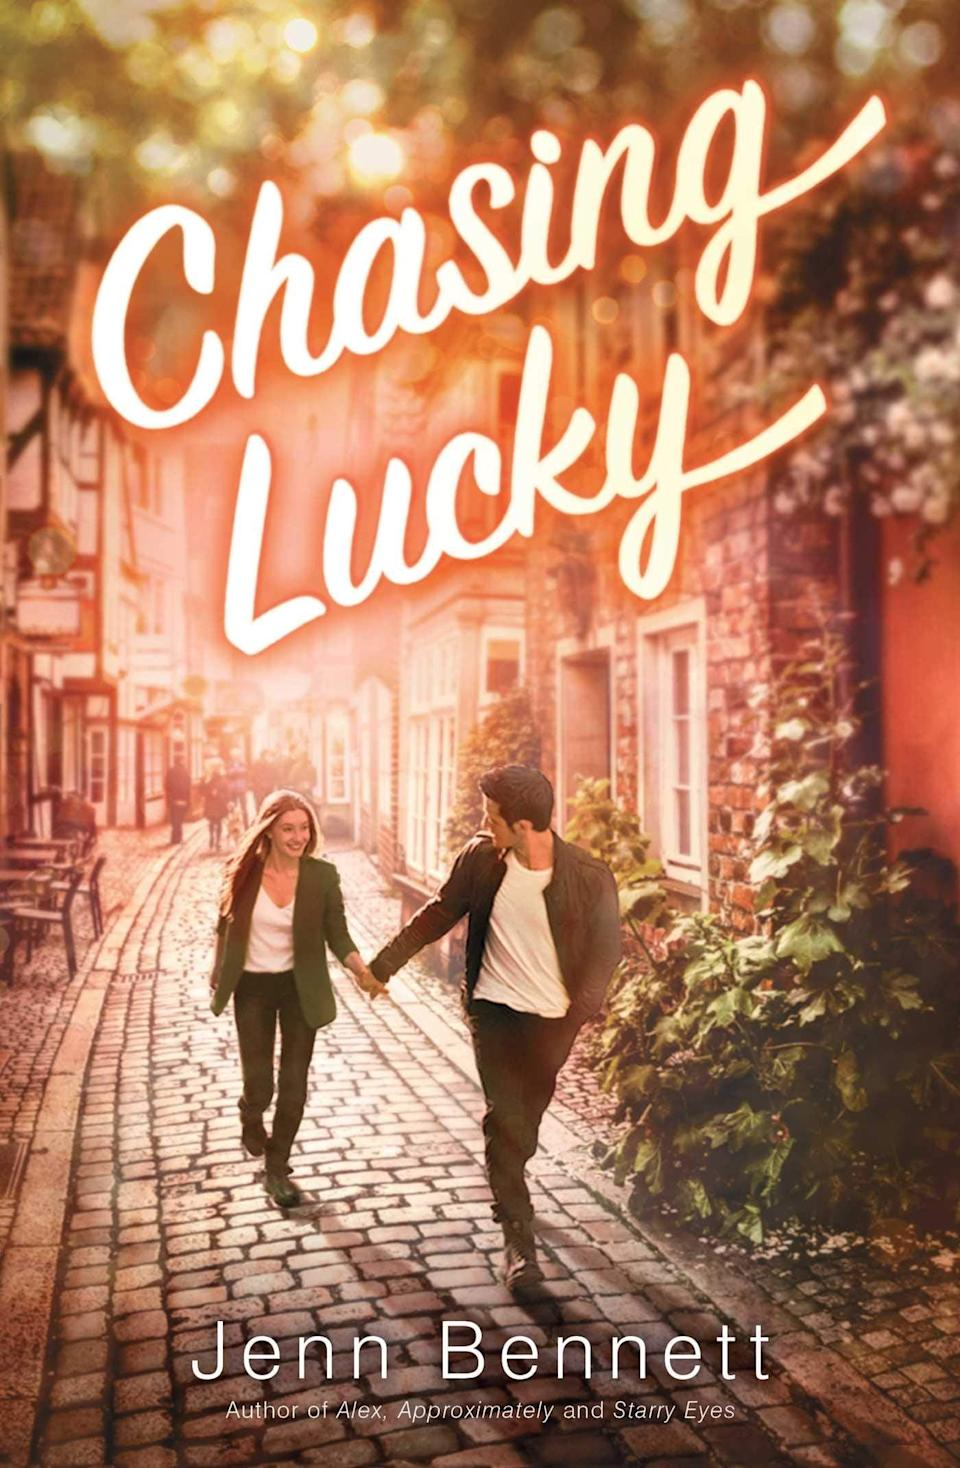 <p><span><strong>Chasing Lucky</strong></span> by Jenn Bennett is a cozy, small town romance about a girl who just can't resist the bad boy - although in truth, Lucky Karras isn't really bad, he simply doesn't fit into his small New England town. If anyone understands that it's his childhood best friend Josie Saint-Martin who has spent years moving from place to place with her mom. Now that they've returned to their hometown, Josie unexpectedly reconnects with Lucky and realizes the sweet little boy she knew as a kid has gone through some interesting changes since she last saw him.</p> <p><em>Out Nov. 10</em></p>